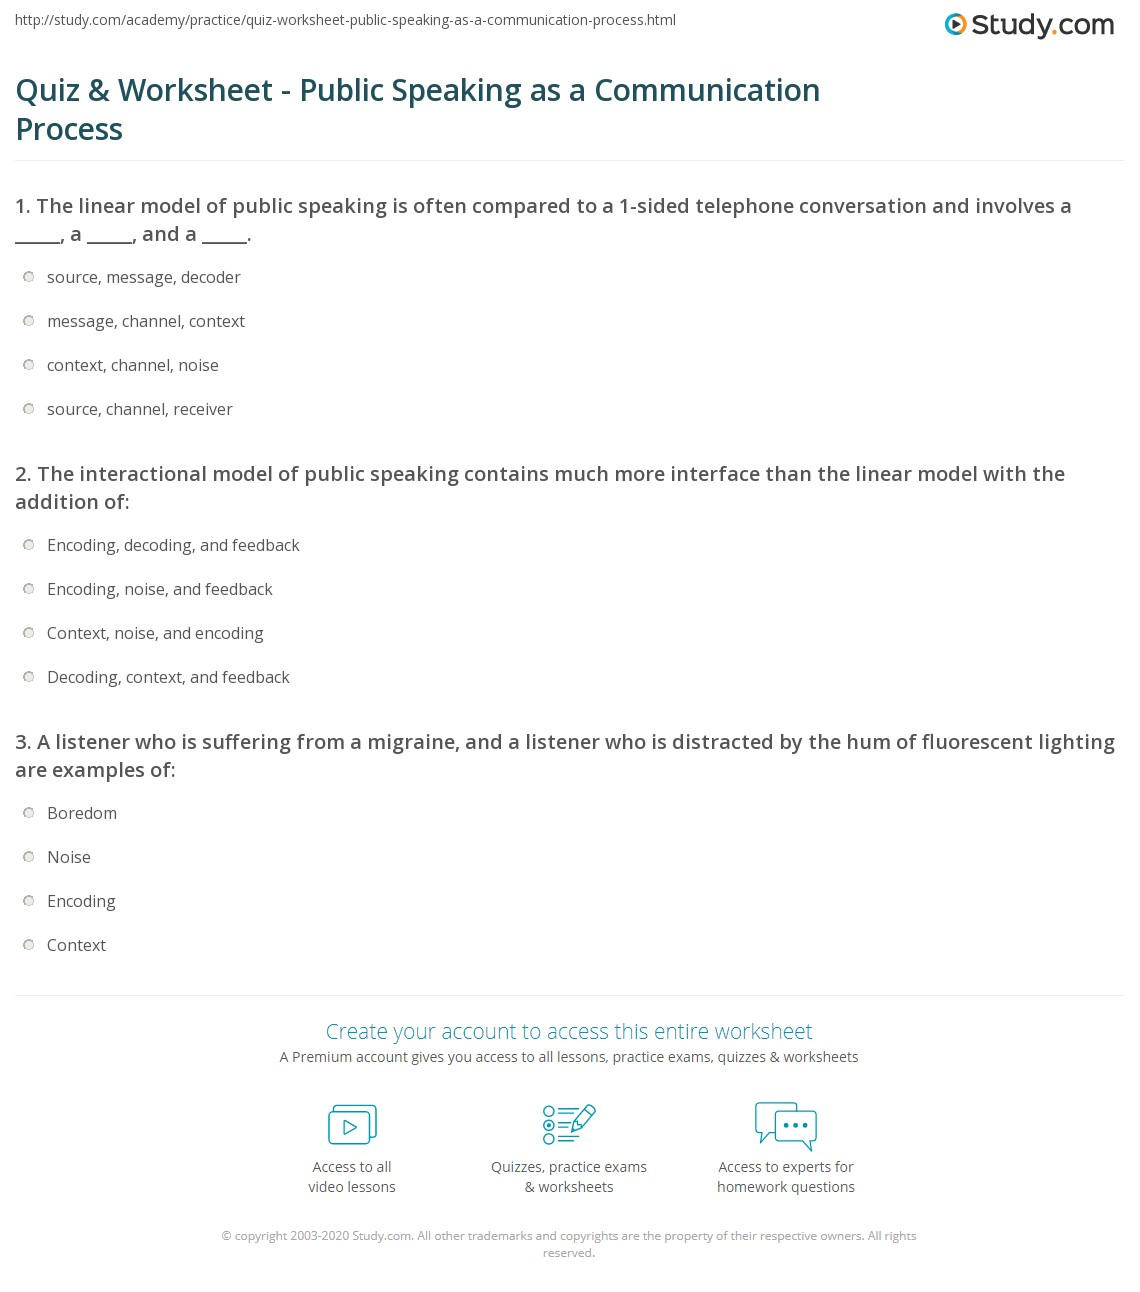 Worksheet Public Speaking Worksheets quiz worksheet public speaking as a communication process print worksheet